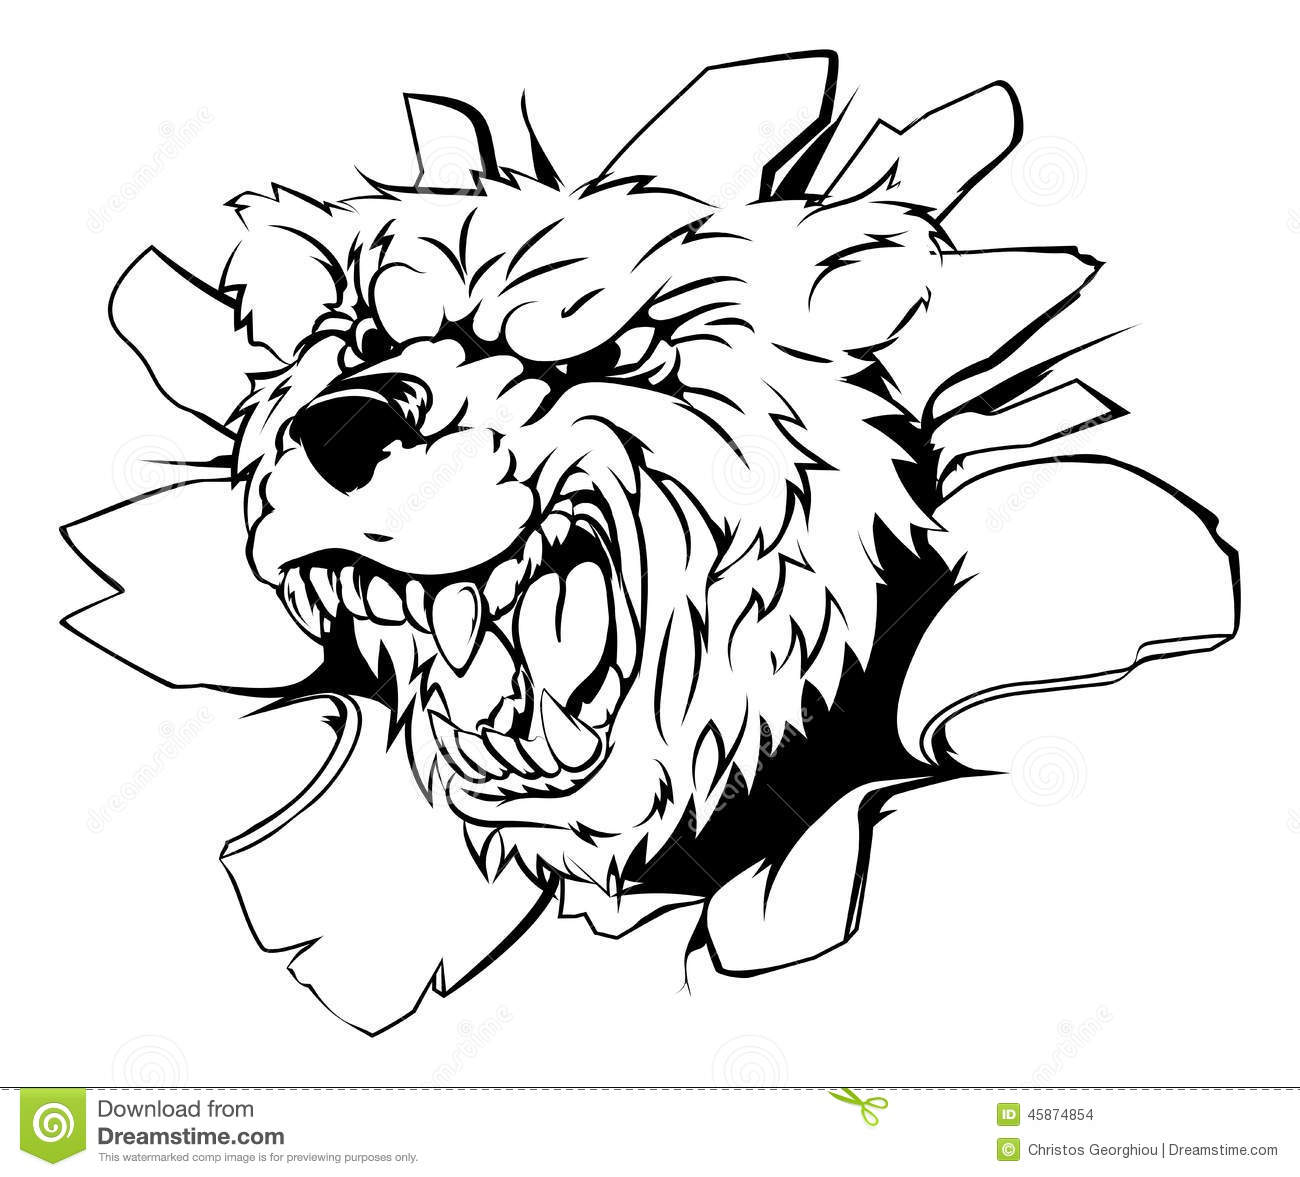 Grizzly Bear clipart fierce Clipart Grizzly Fierce Fierce collection